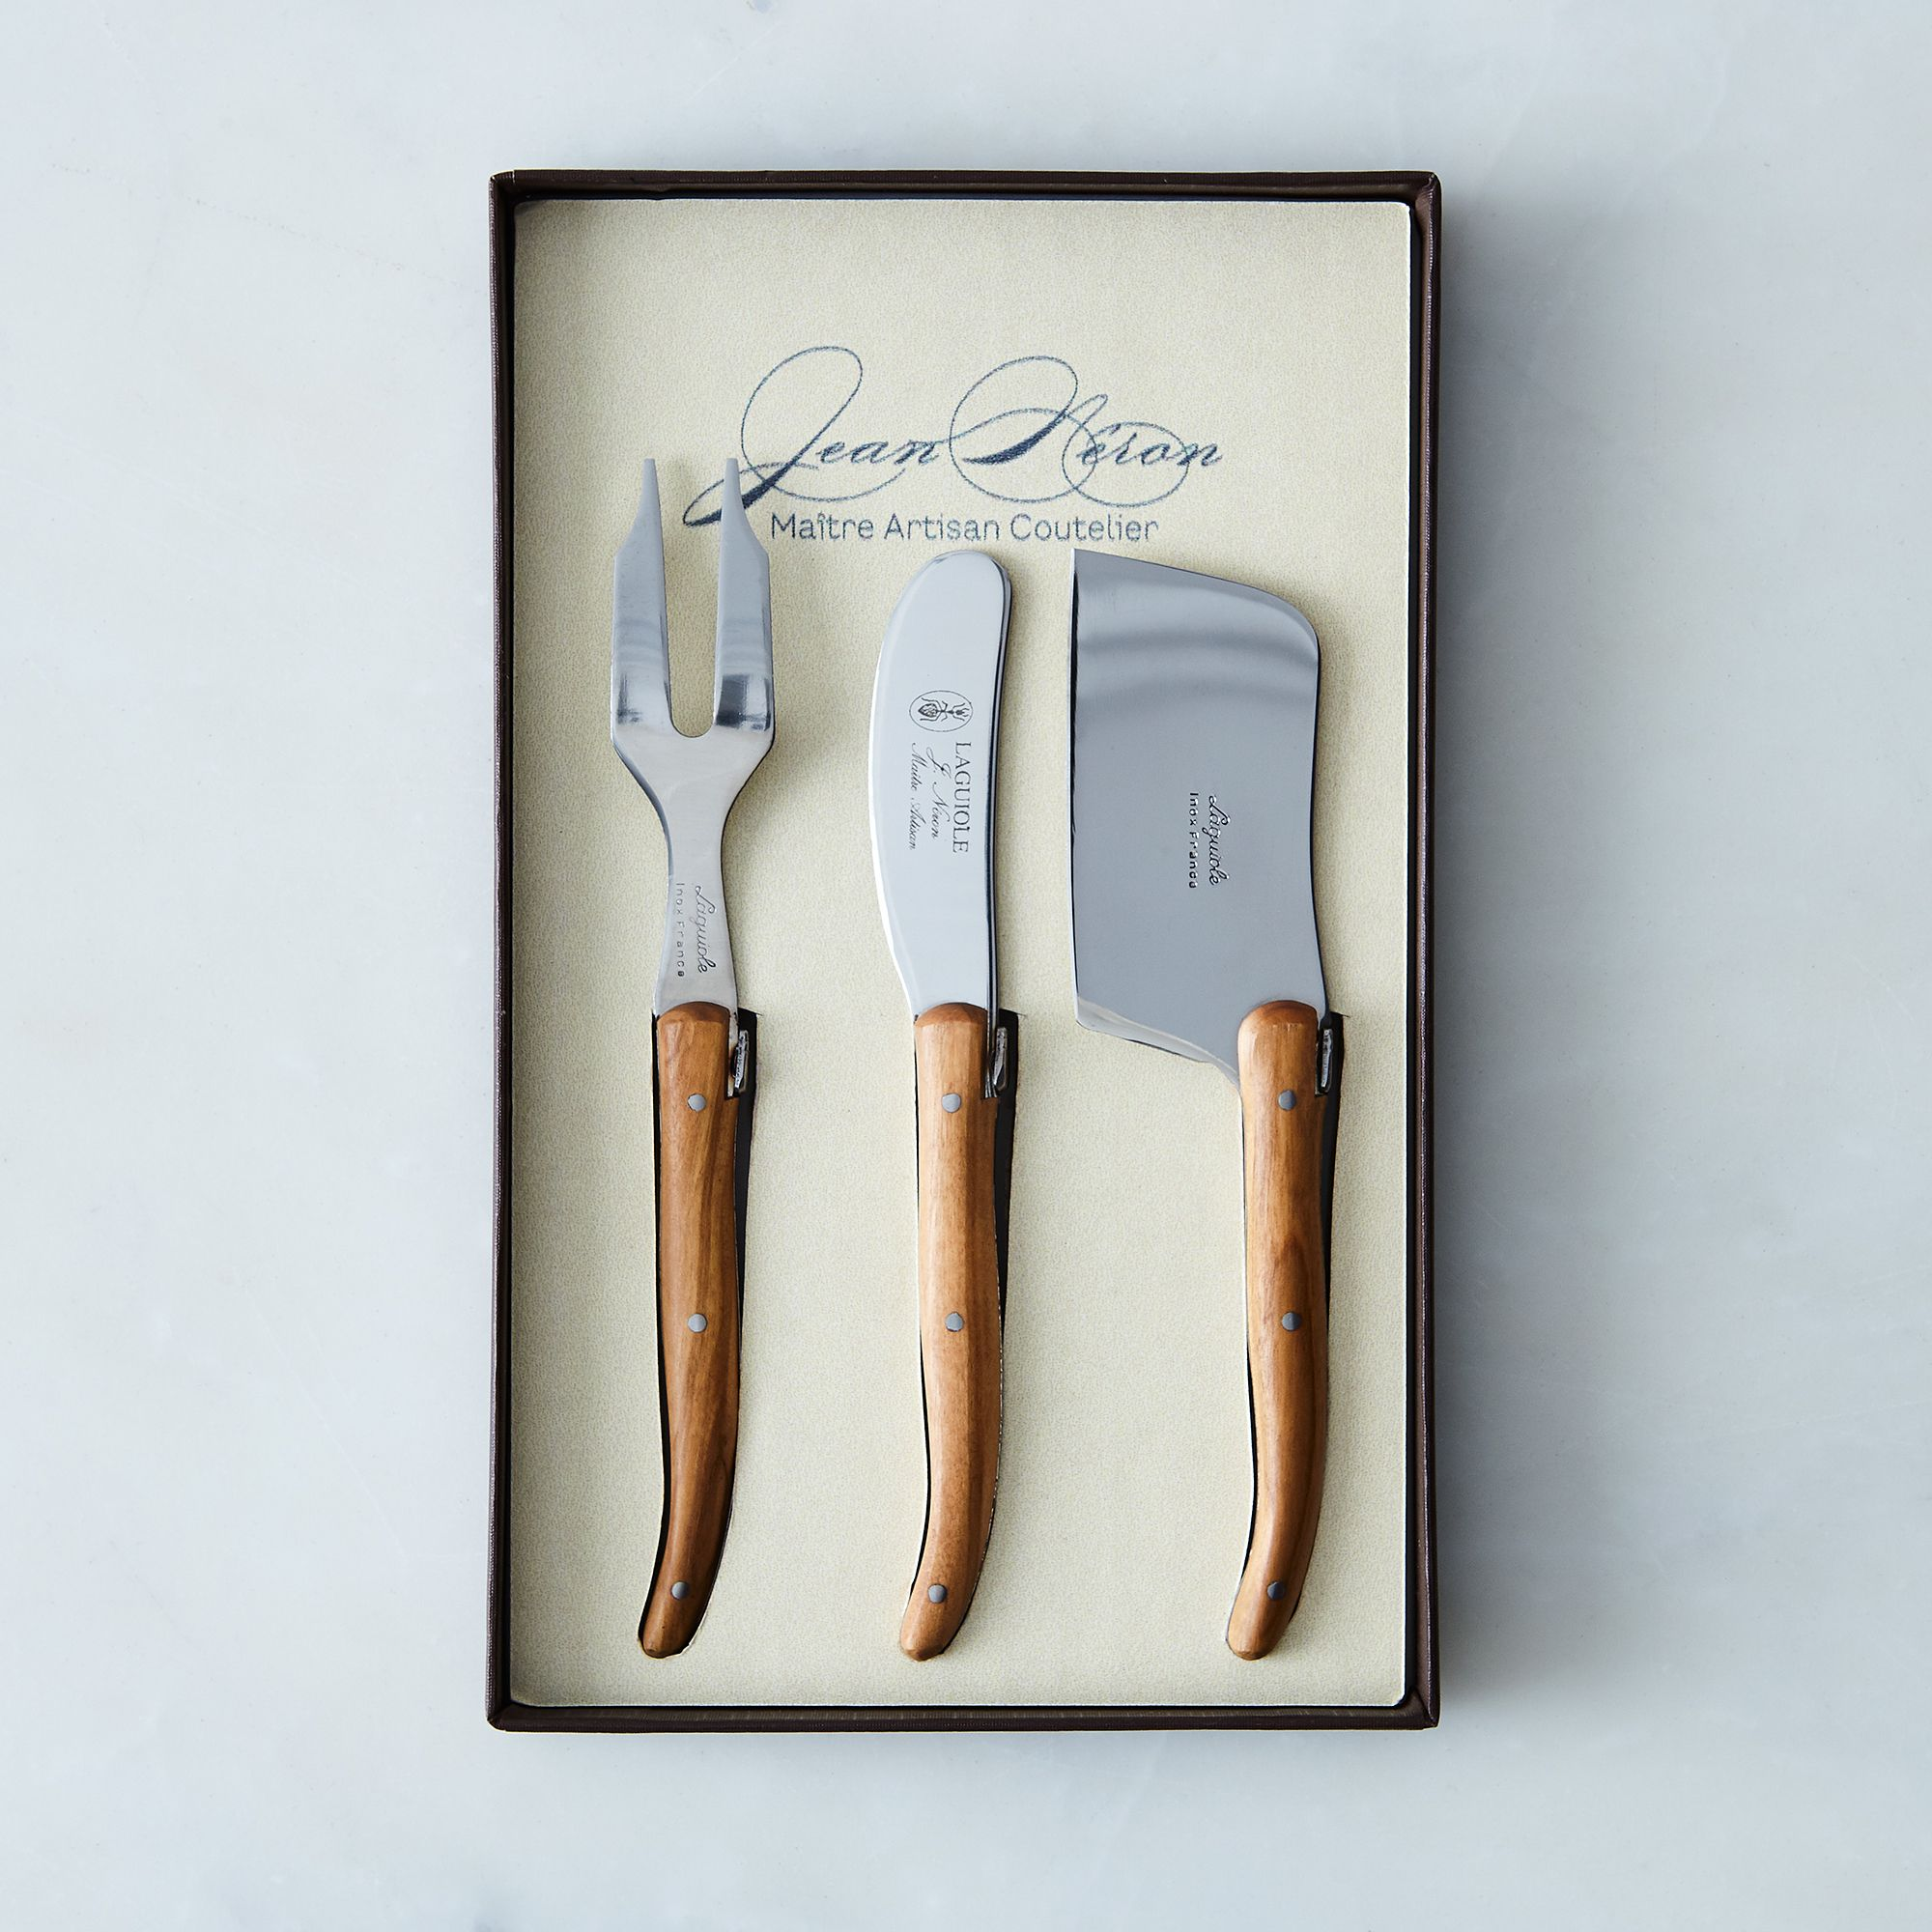 Fba4d705 0997 4712 af63 bfdaaa13fd14  2017 0315 kiss that frog olivewood laguiole cheese knives set of 3 silo rocky luten 014